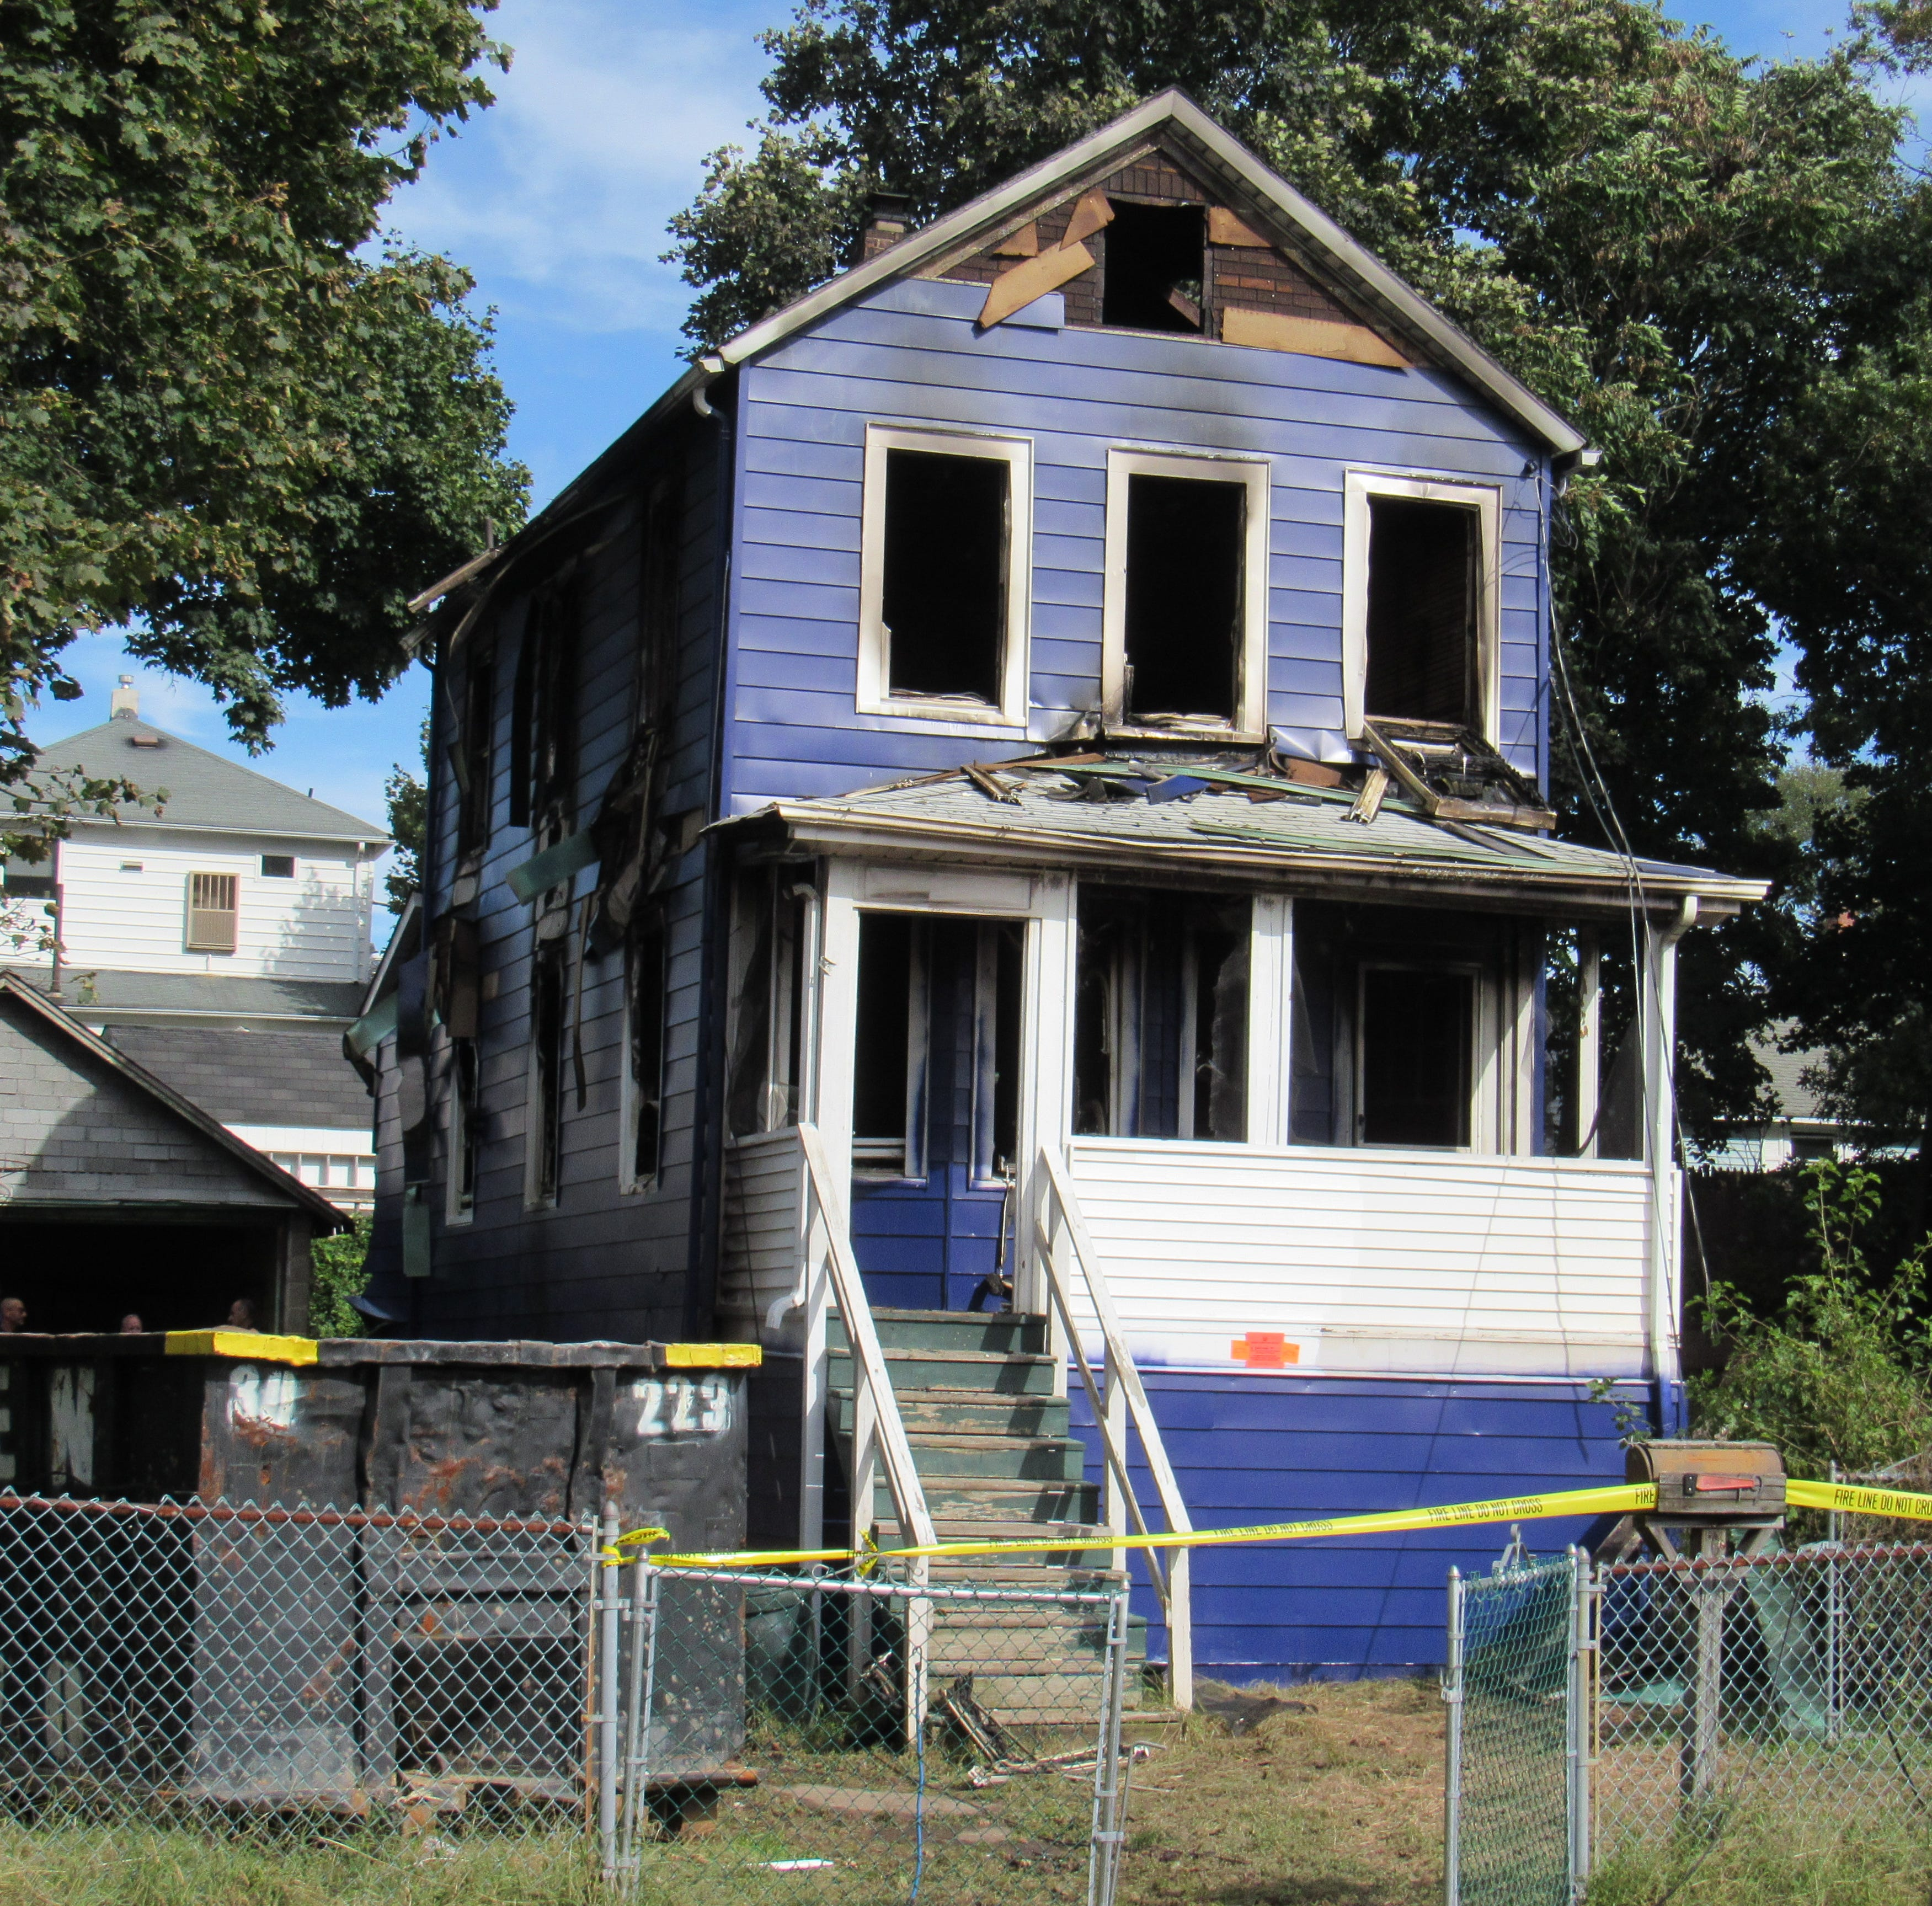 Manville: House damaged in Thursday night fire